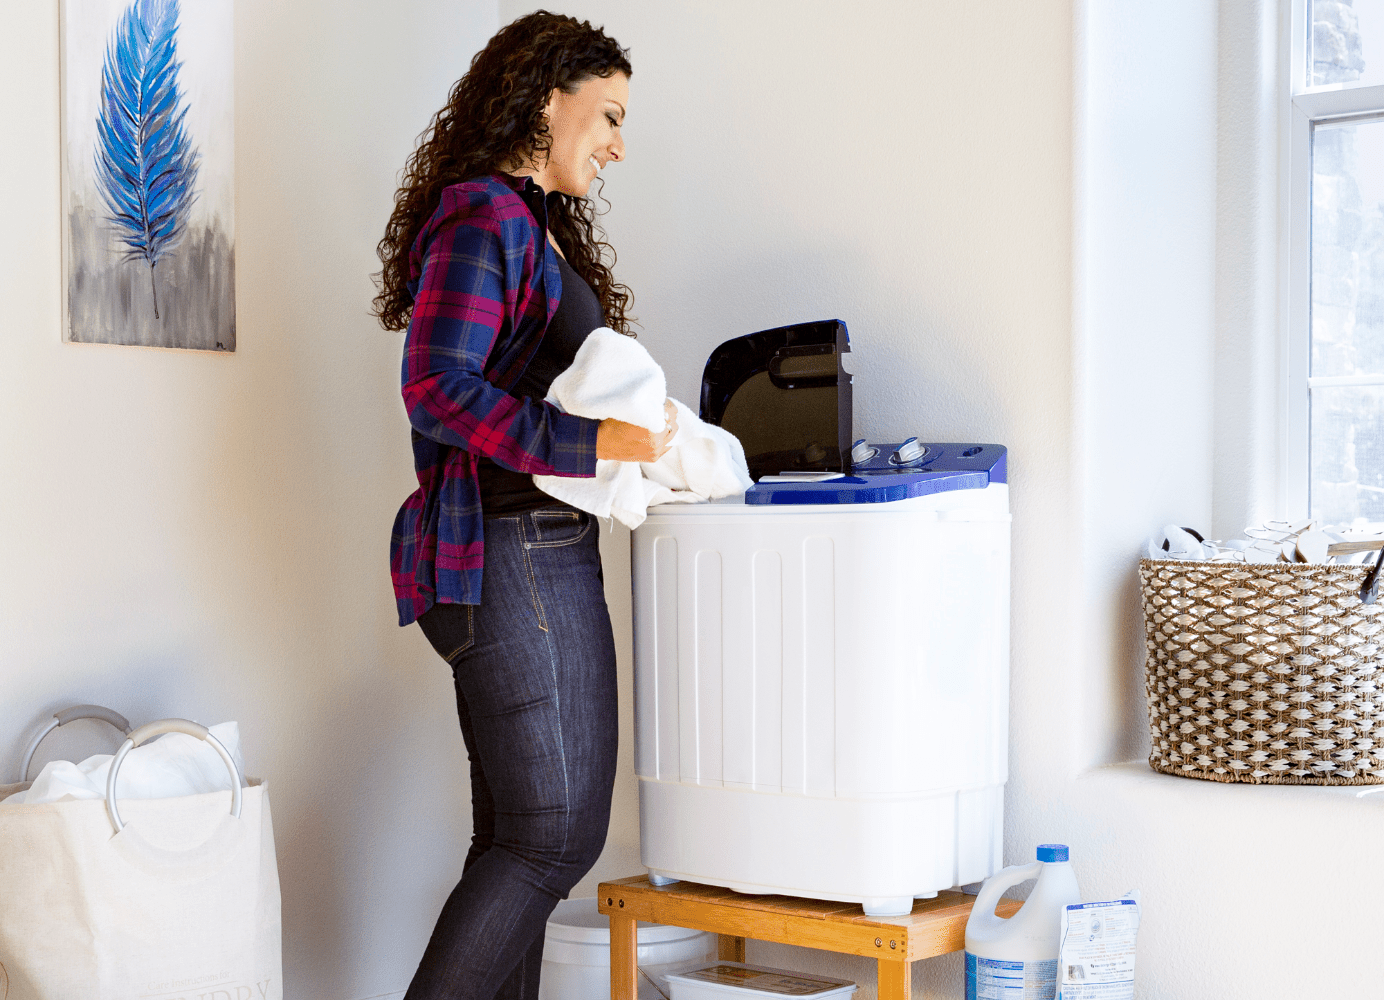 The 8 Best Portable Washing Machines of 2019